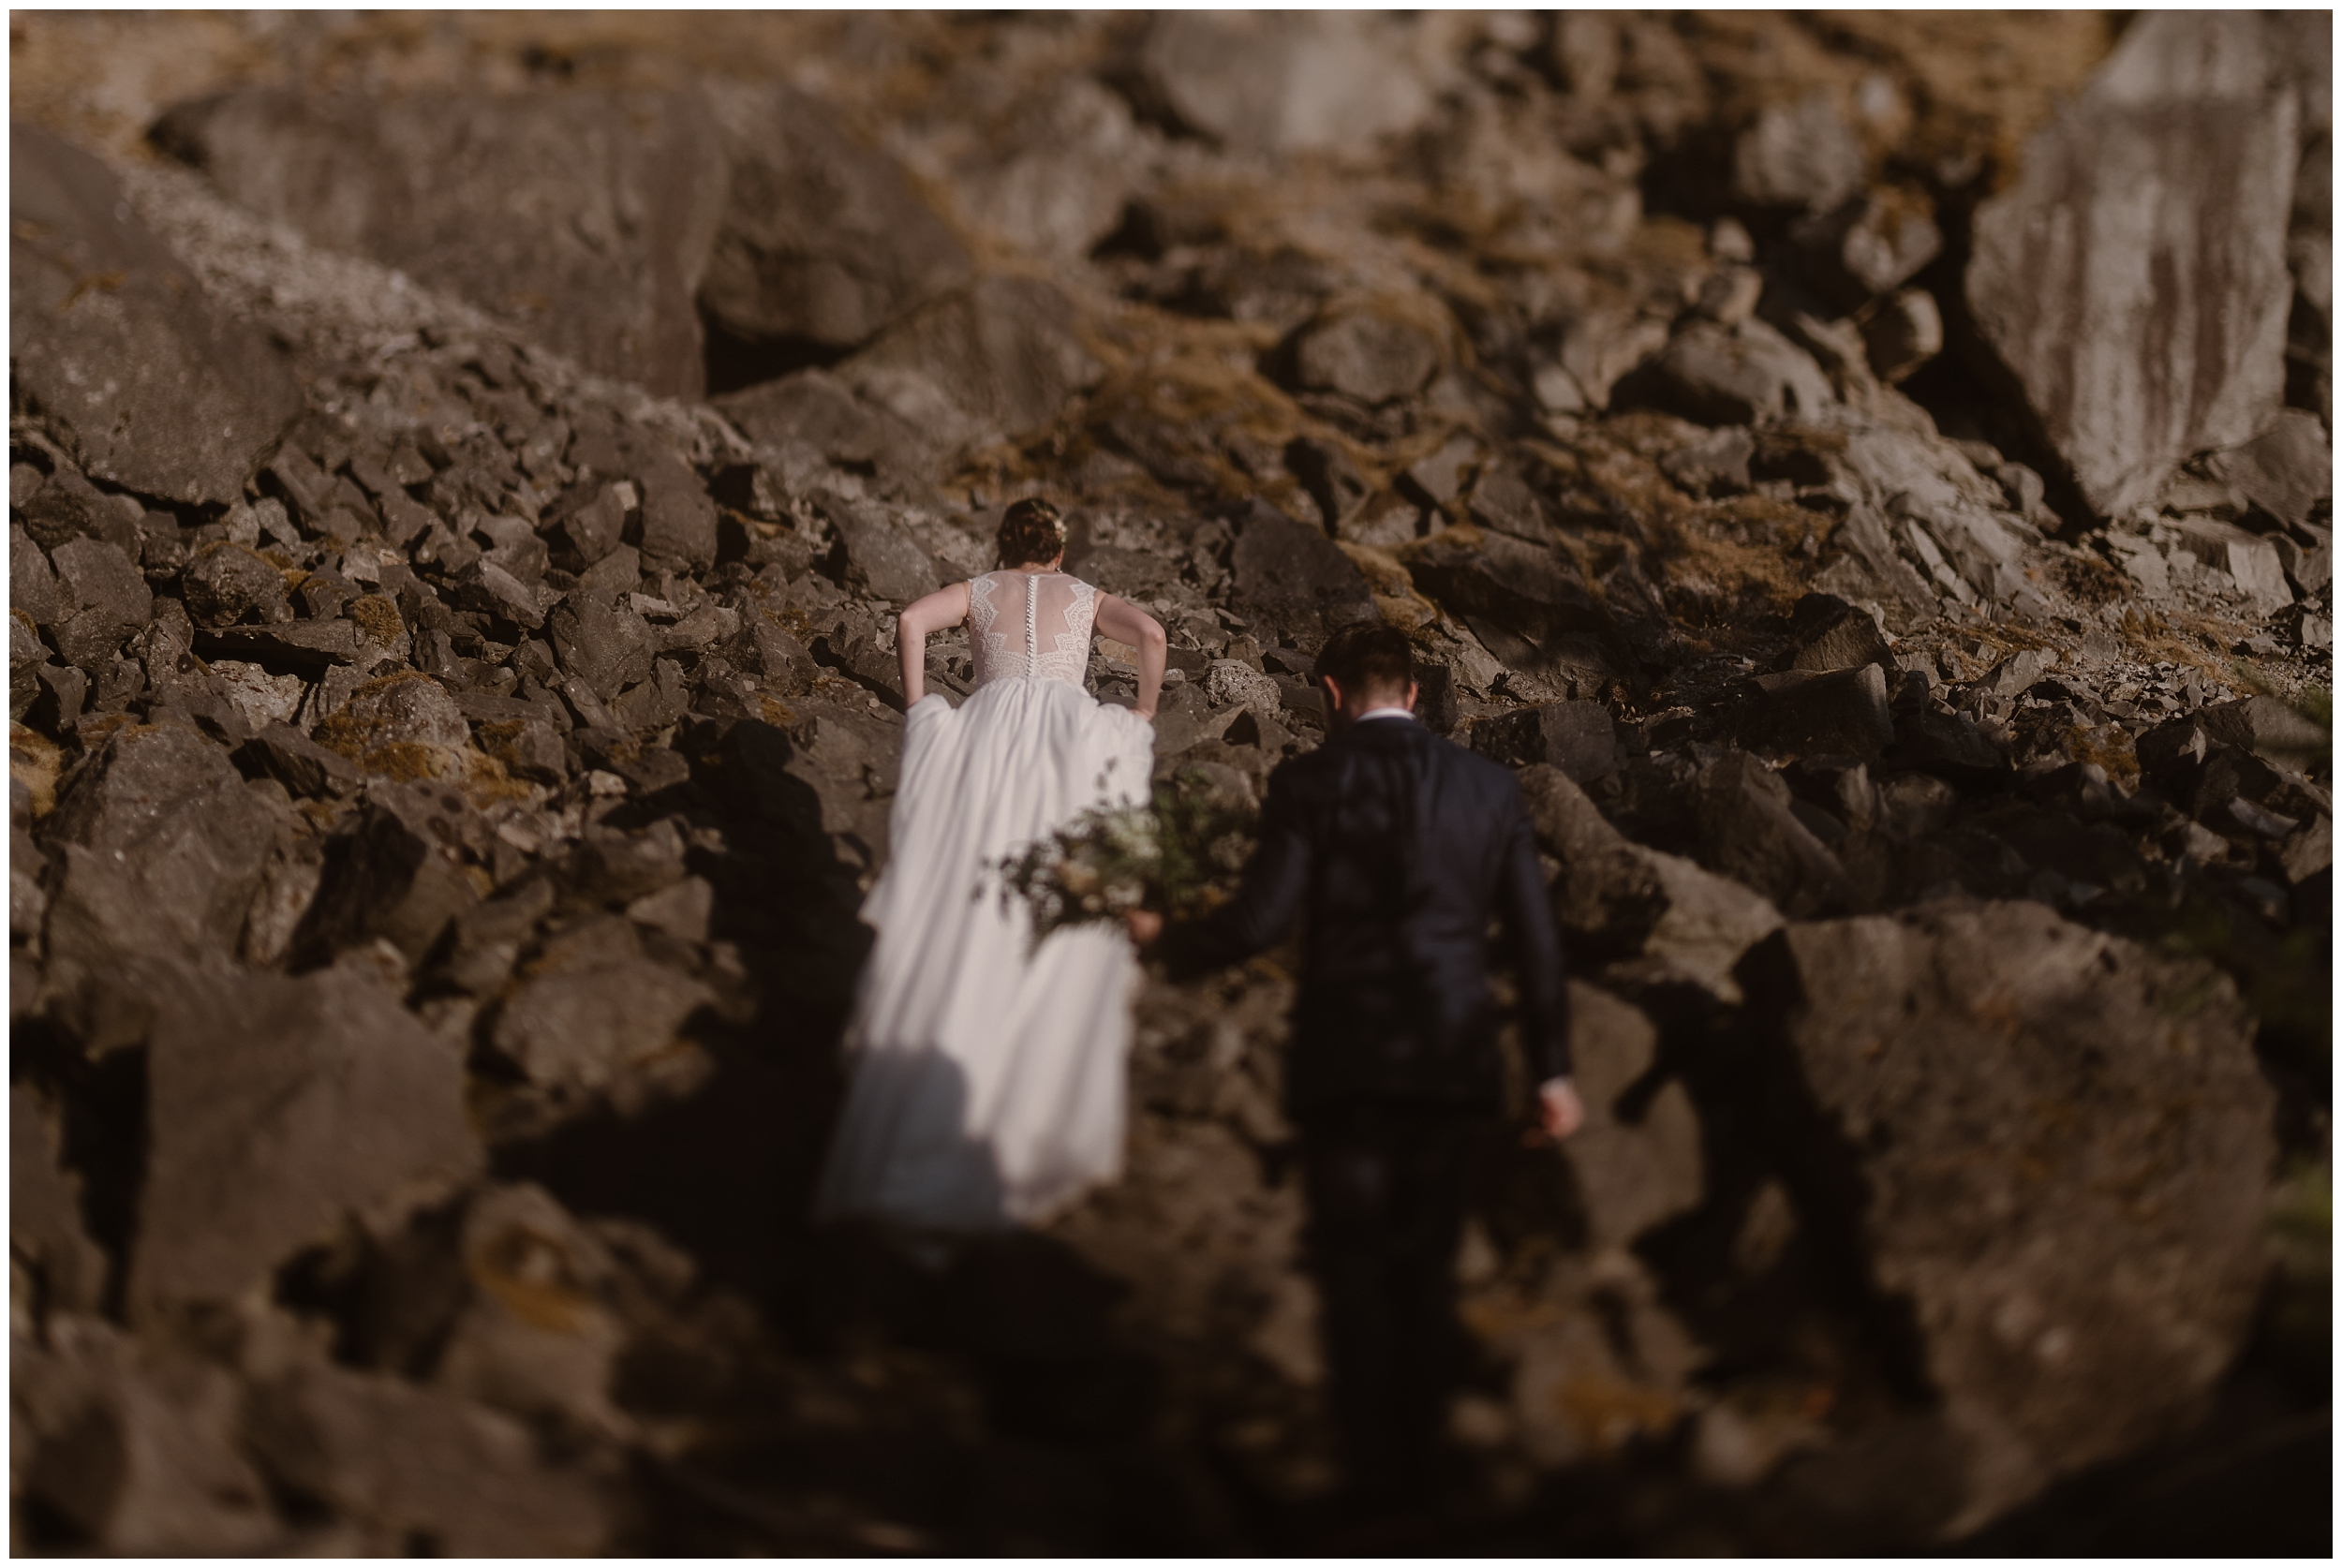 Lauryn and David climb up the rocky side of the Columbia River Gorge, still in their wedding attire. Golden light and shadow casts upon them on the craggy rocks. David carries Lauryn's bouquet.